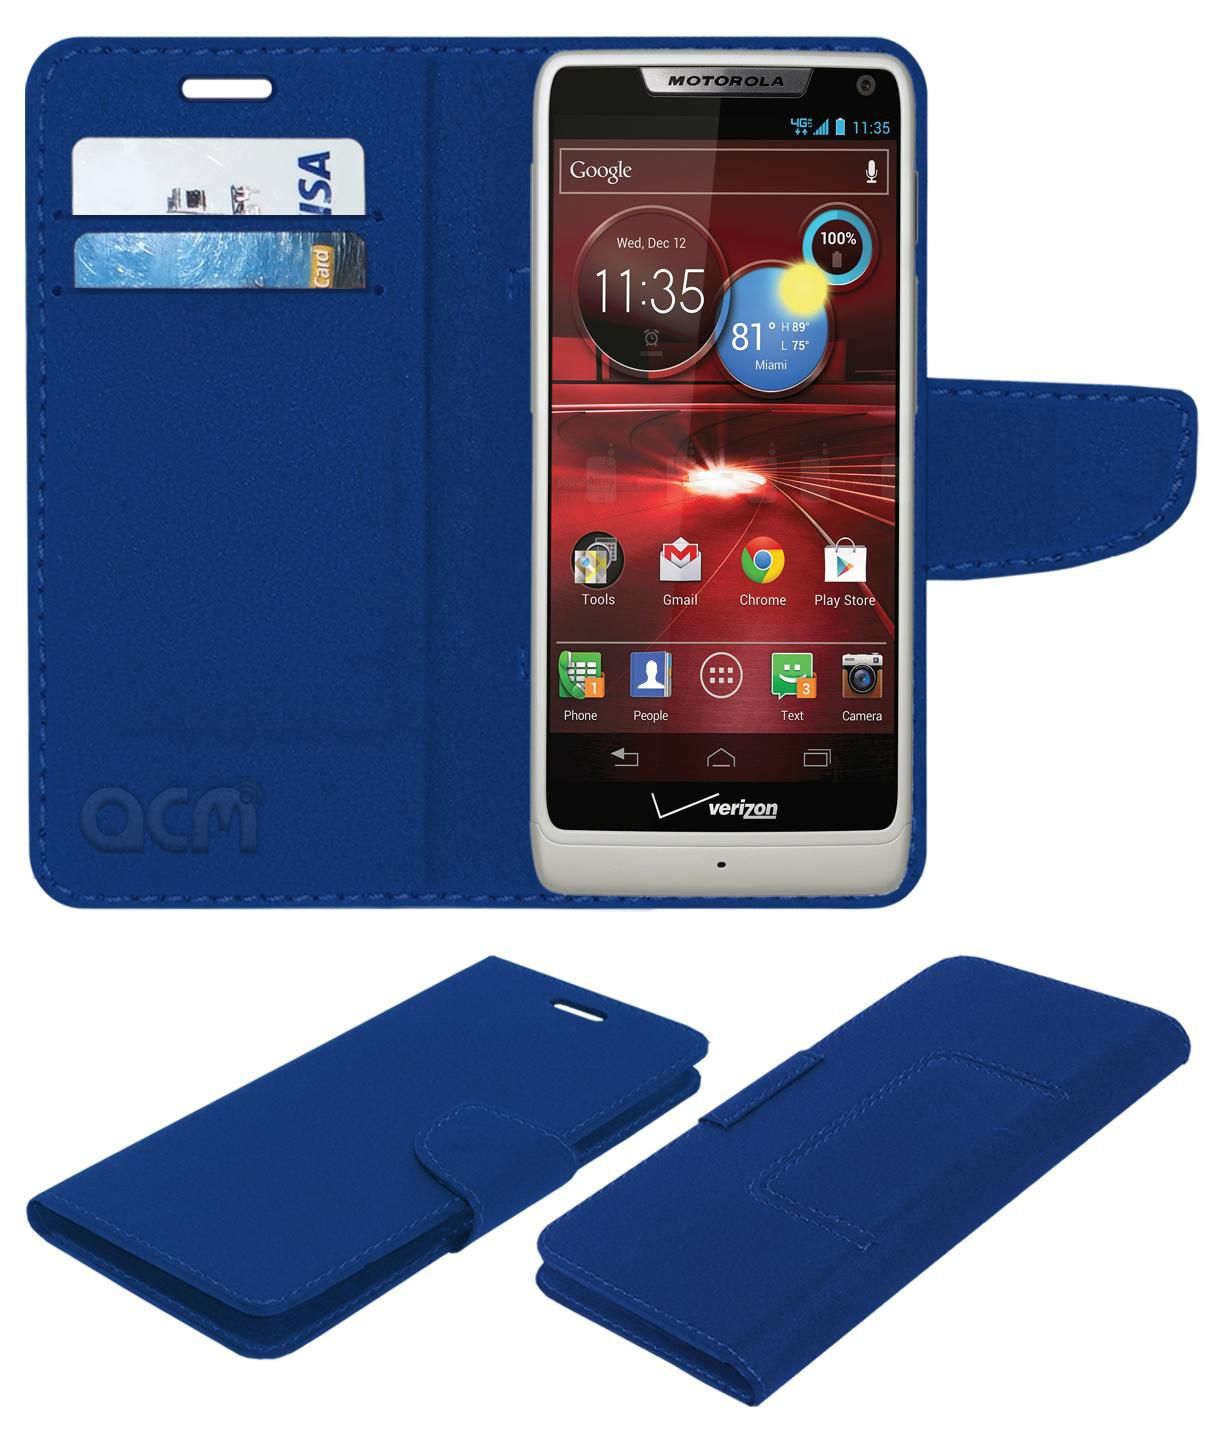 Motorola Droid Razr Maxx HD Flip Cover by ACM - Blue